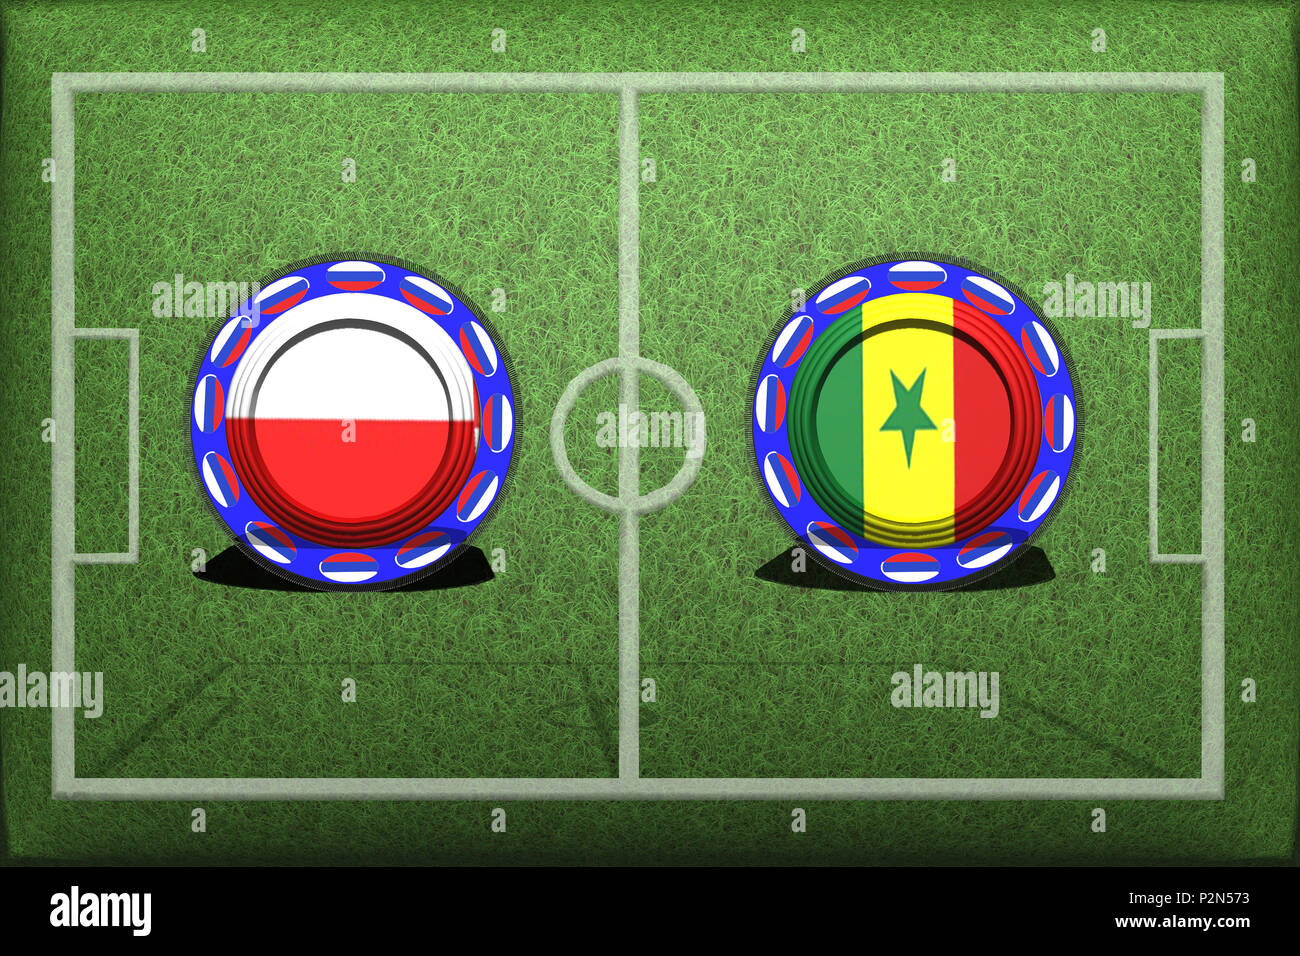 ScreeningAndBlurSoDesiredFootballCompetitionBetweenNationalTeamsPolenSenegal